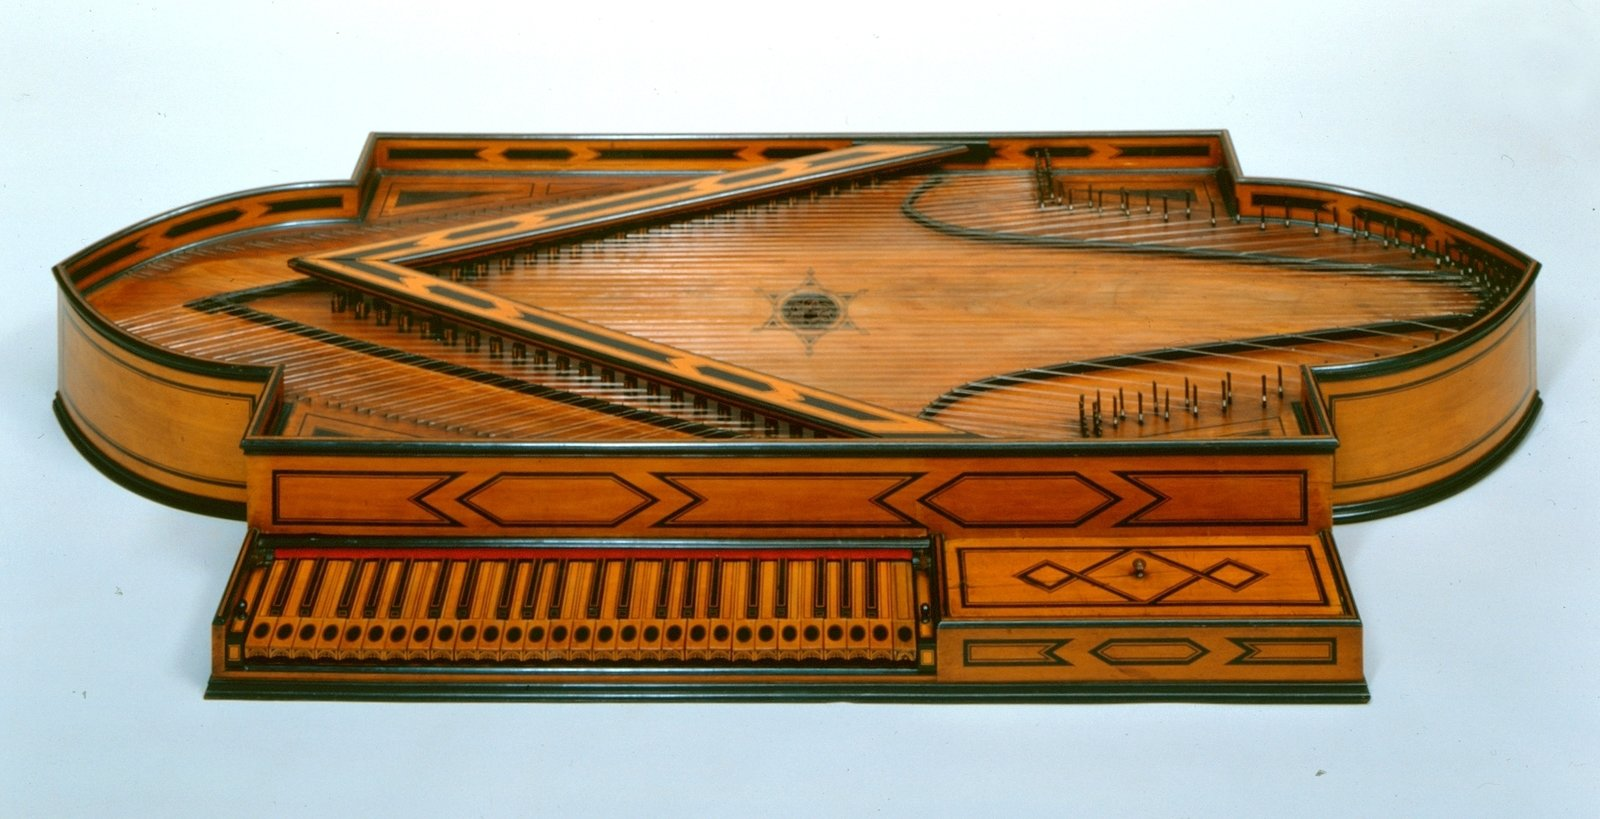 Spinett, 1693, Bartolomeo Cristofori, [The unique instrument is a fantastic example of the creative powers of Bartolomeo Cristofori and was made a few years before his invention of the pianoforte. It blends ingenious design and technical solutions with virtually unsurpassable craftsmanship. With this instrument, he managed to combine the benefits of the harpsichord (use of a double course, long bass scale) with the more intimate shape of a spinet in a visually pleasing form. Cristofori only built two known models of this type, a harpsichord in 1690 and the instrument described here in 1693. Both instruments were made for Ferdinand de Medici, the eldest son of the Grand Duke of Tuscany, Cosimo III. de Medici.], Museum für Musikinstrumente der Universität Leipzig, CC BY-NC-SA